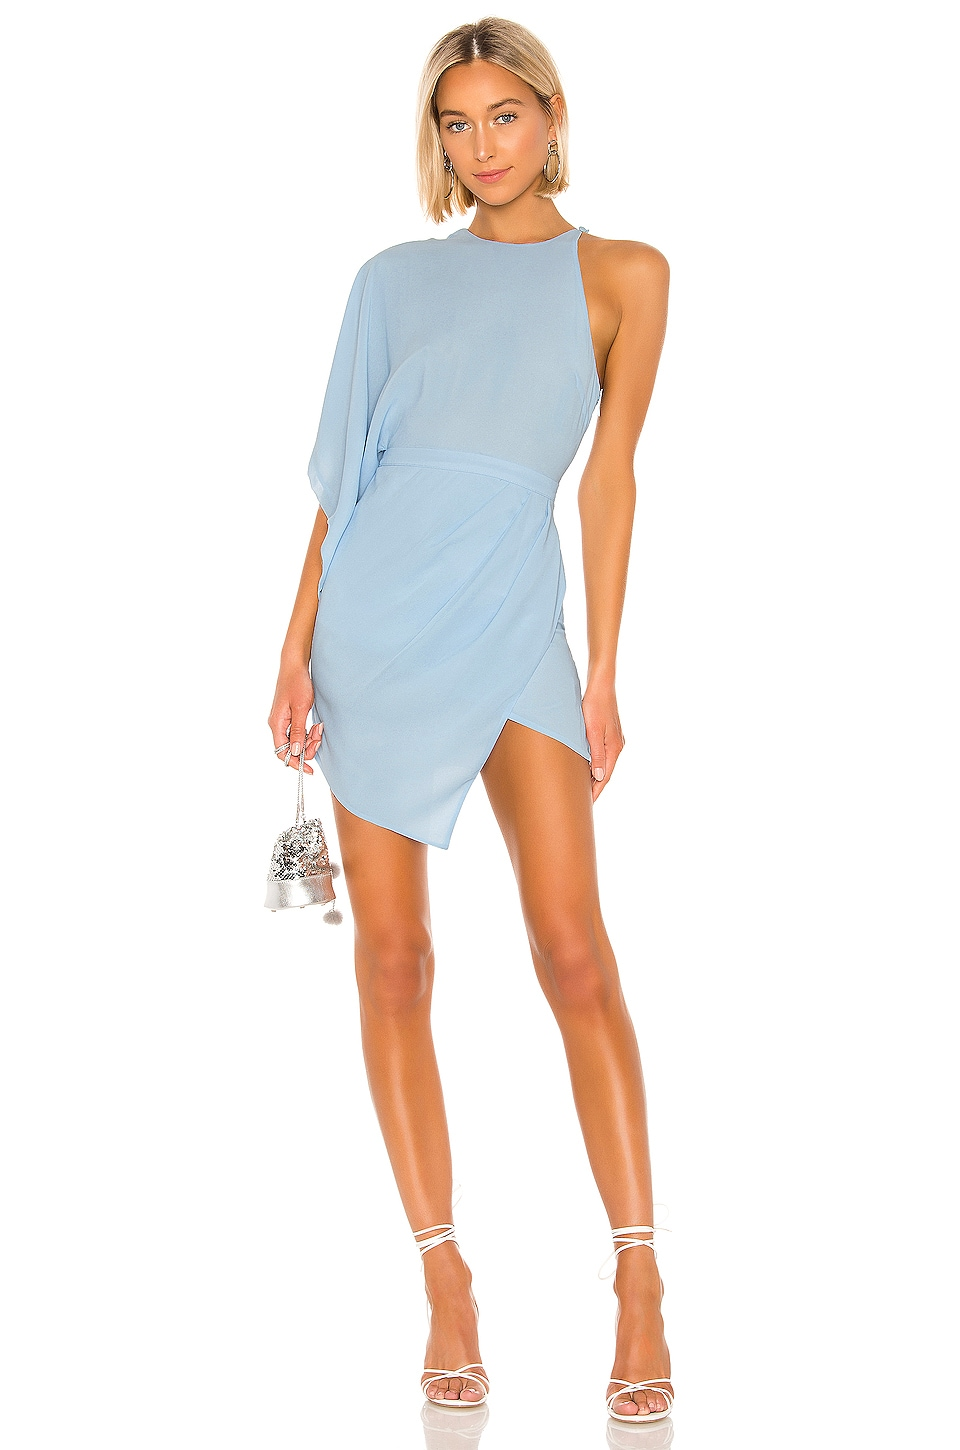 Michael Costello x REVOLVE Lexa Dress in Light Blue